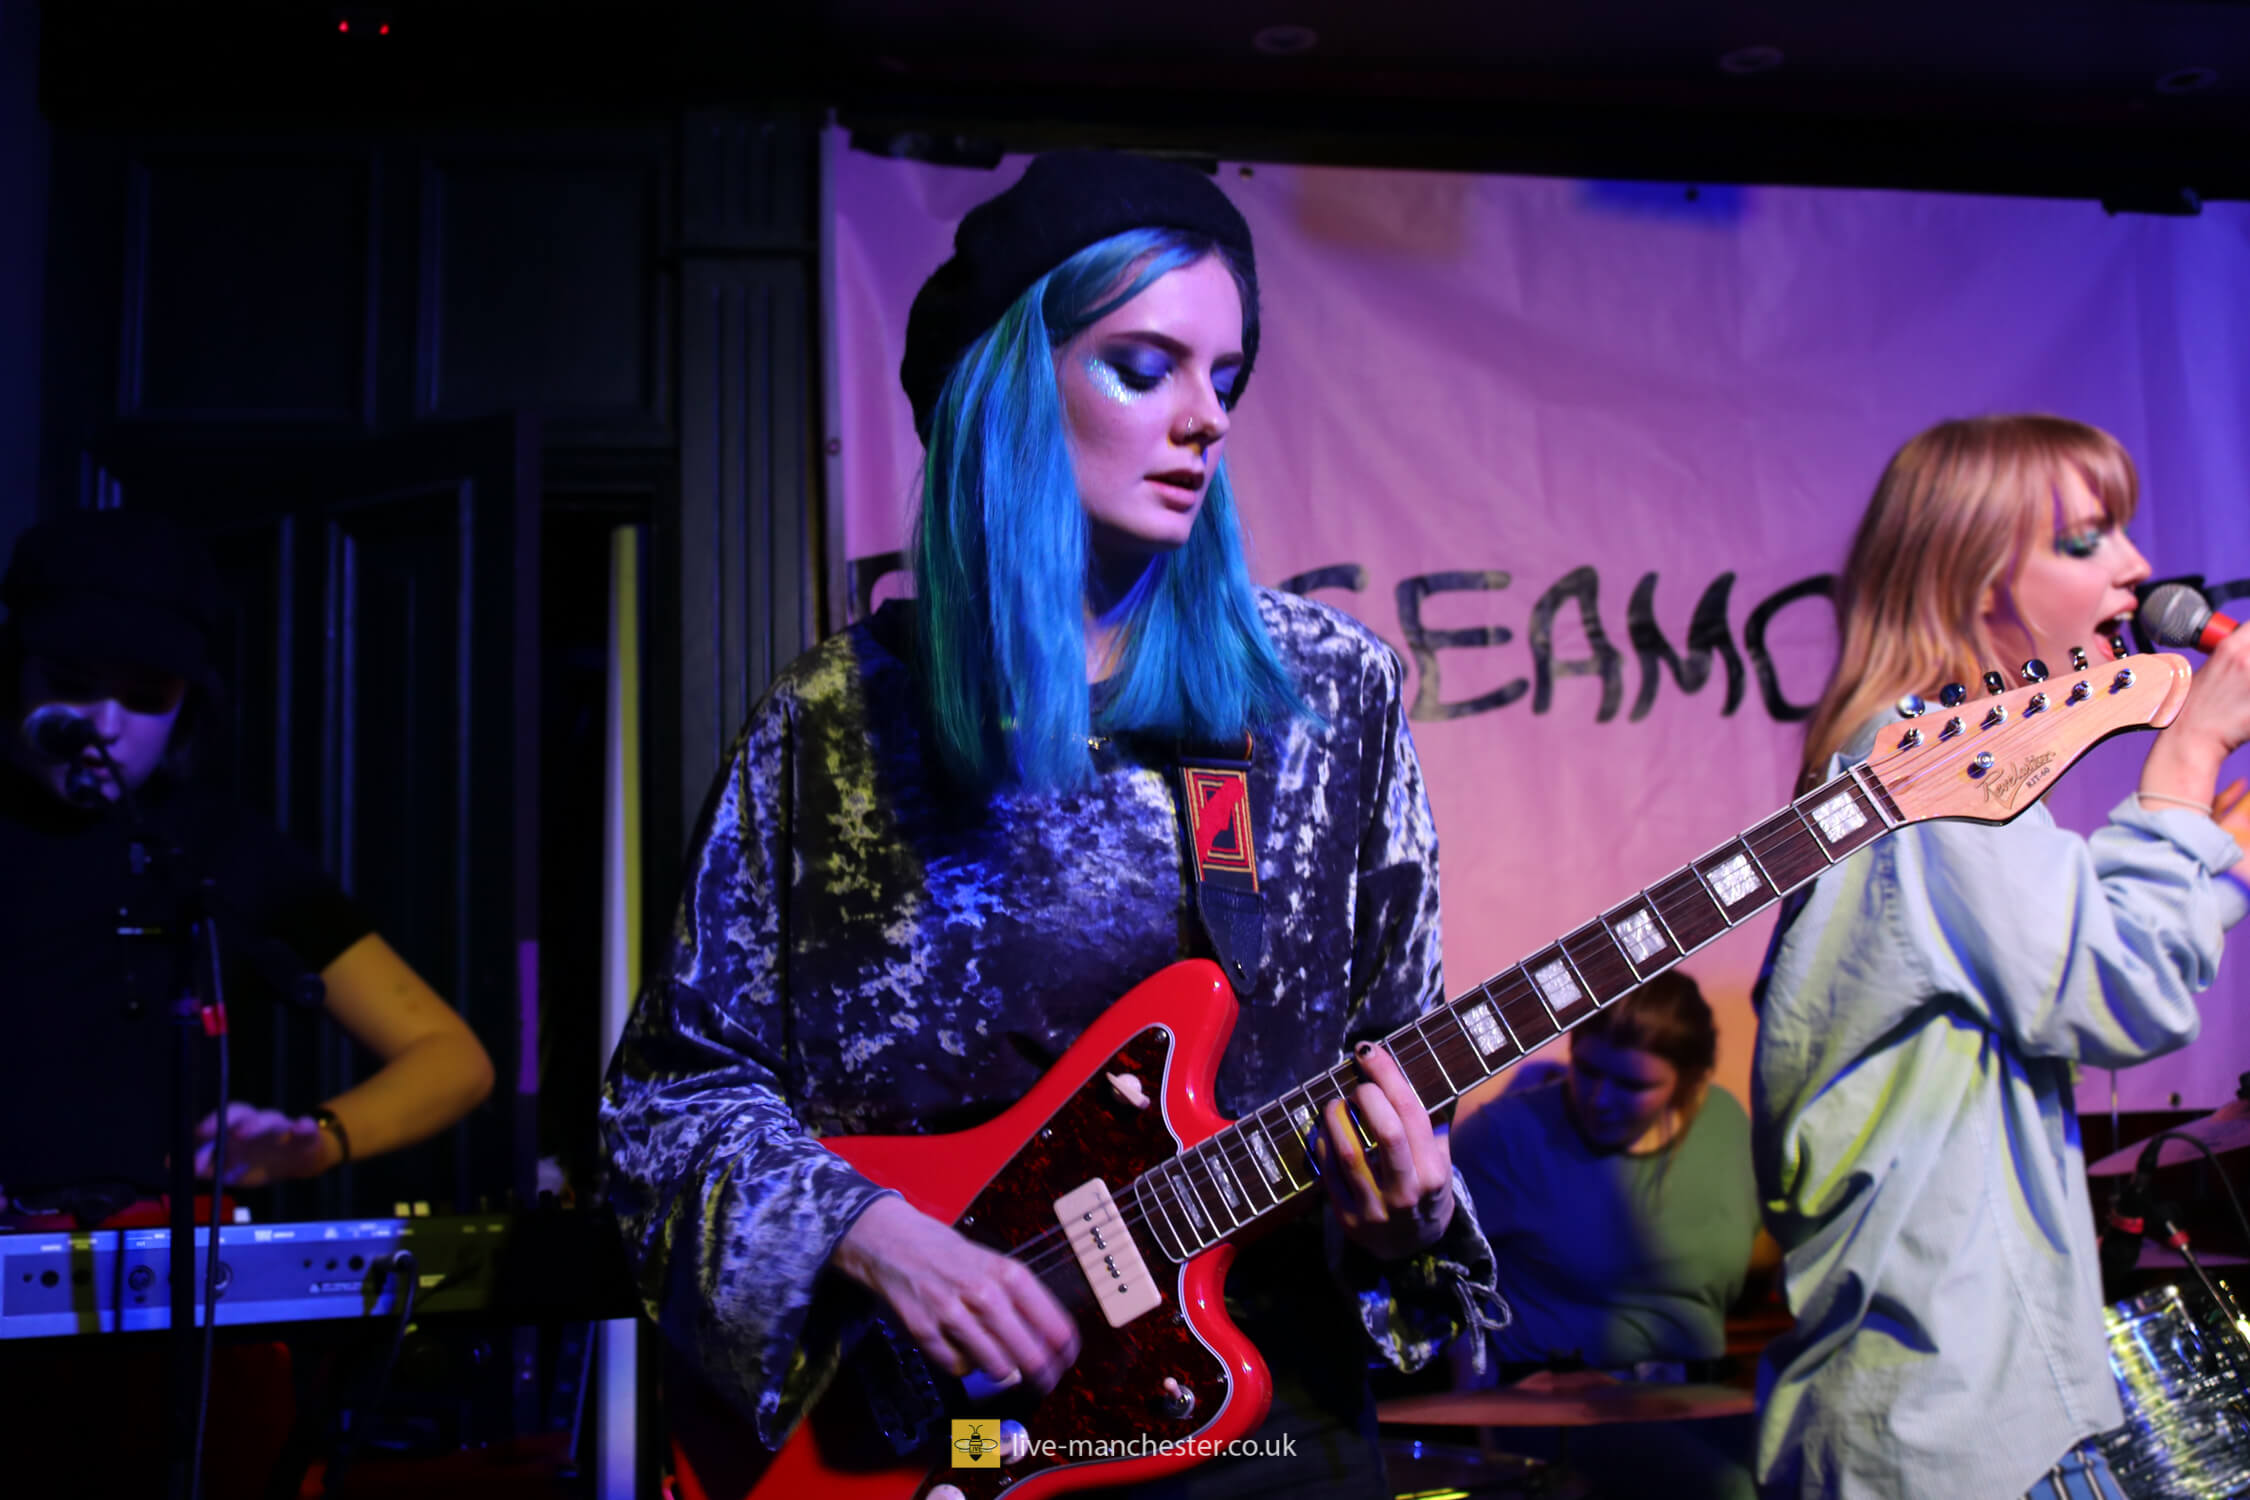 The Seamonsters at The Castle Manchester